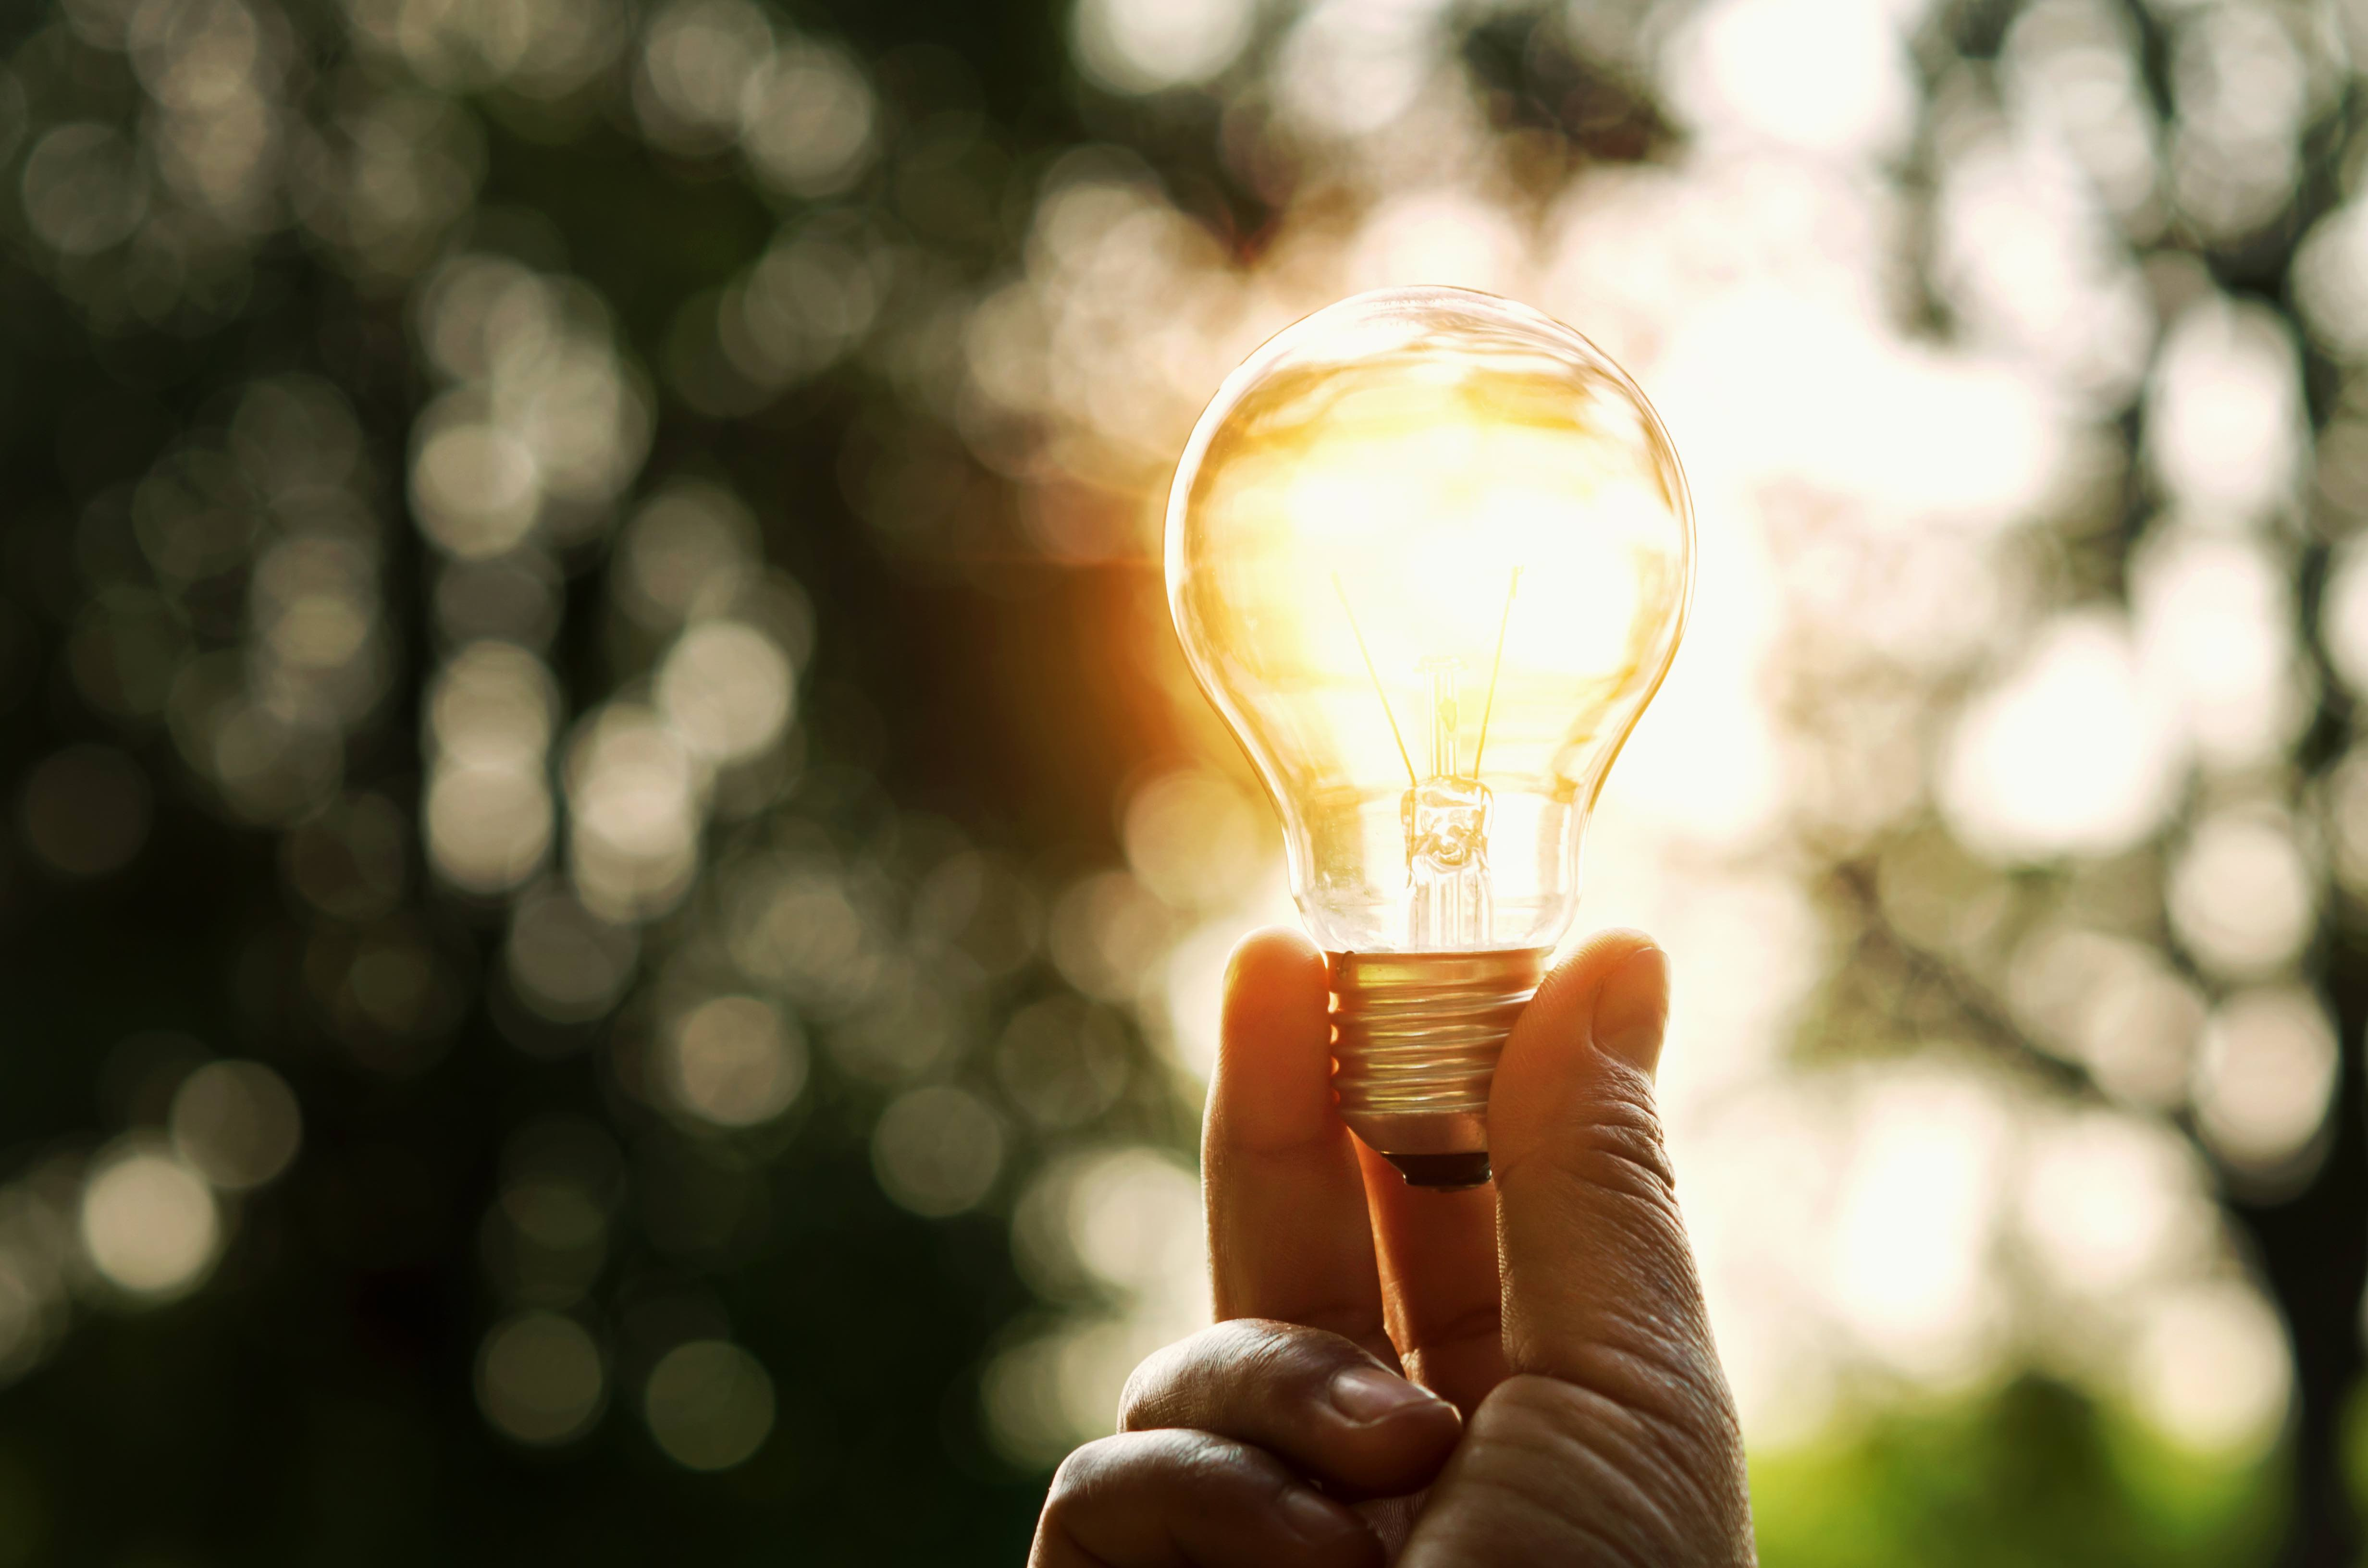 The Eco-Friendly Inventions You Need to Know About